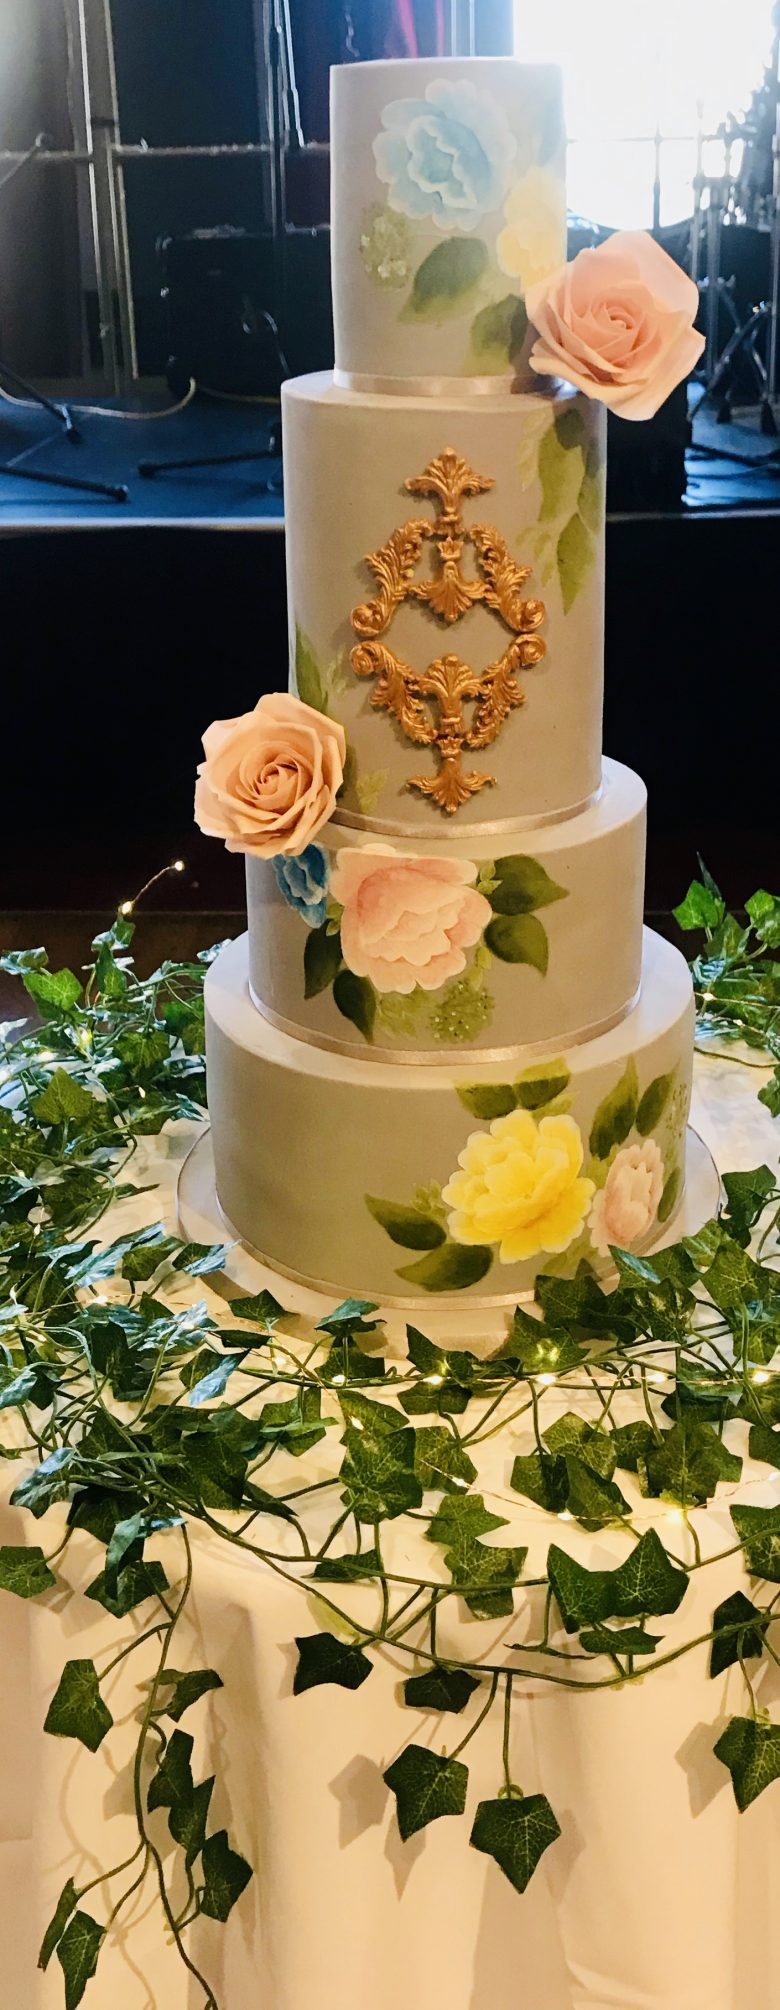 Four tiered vegan wedding cake